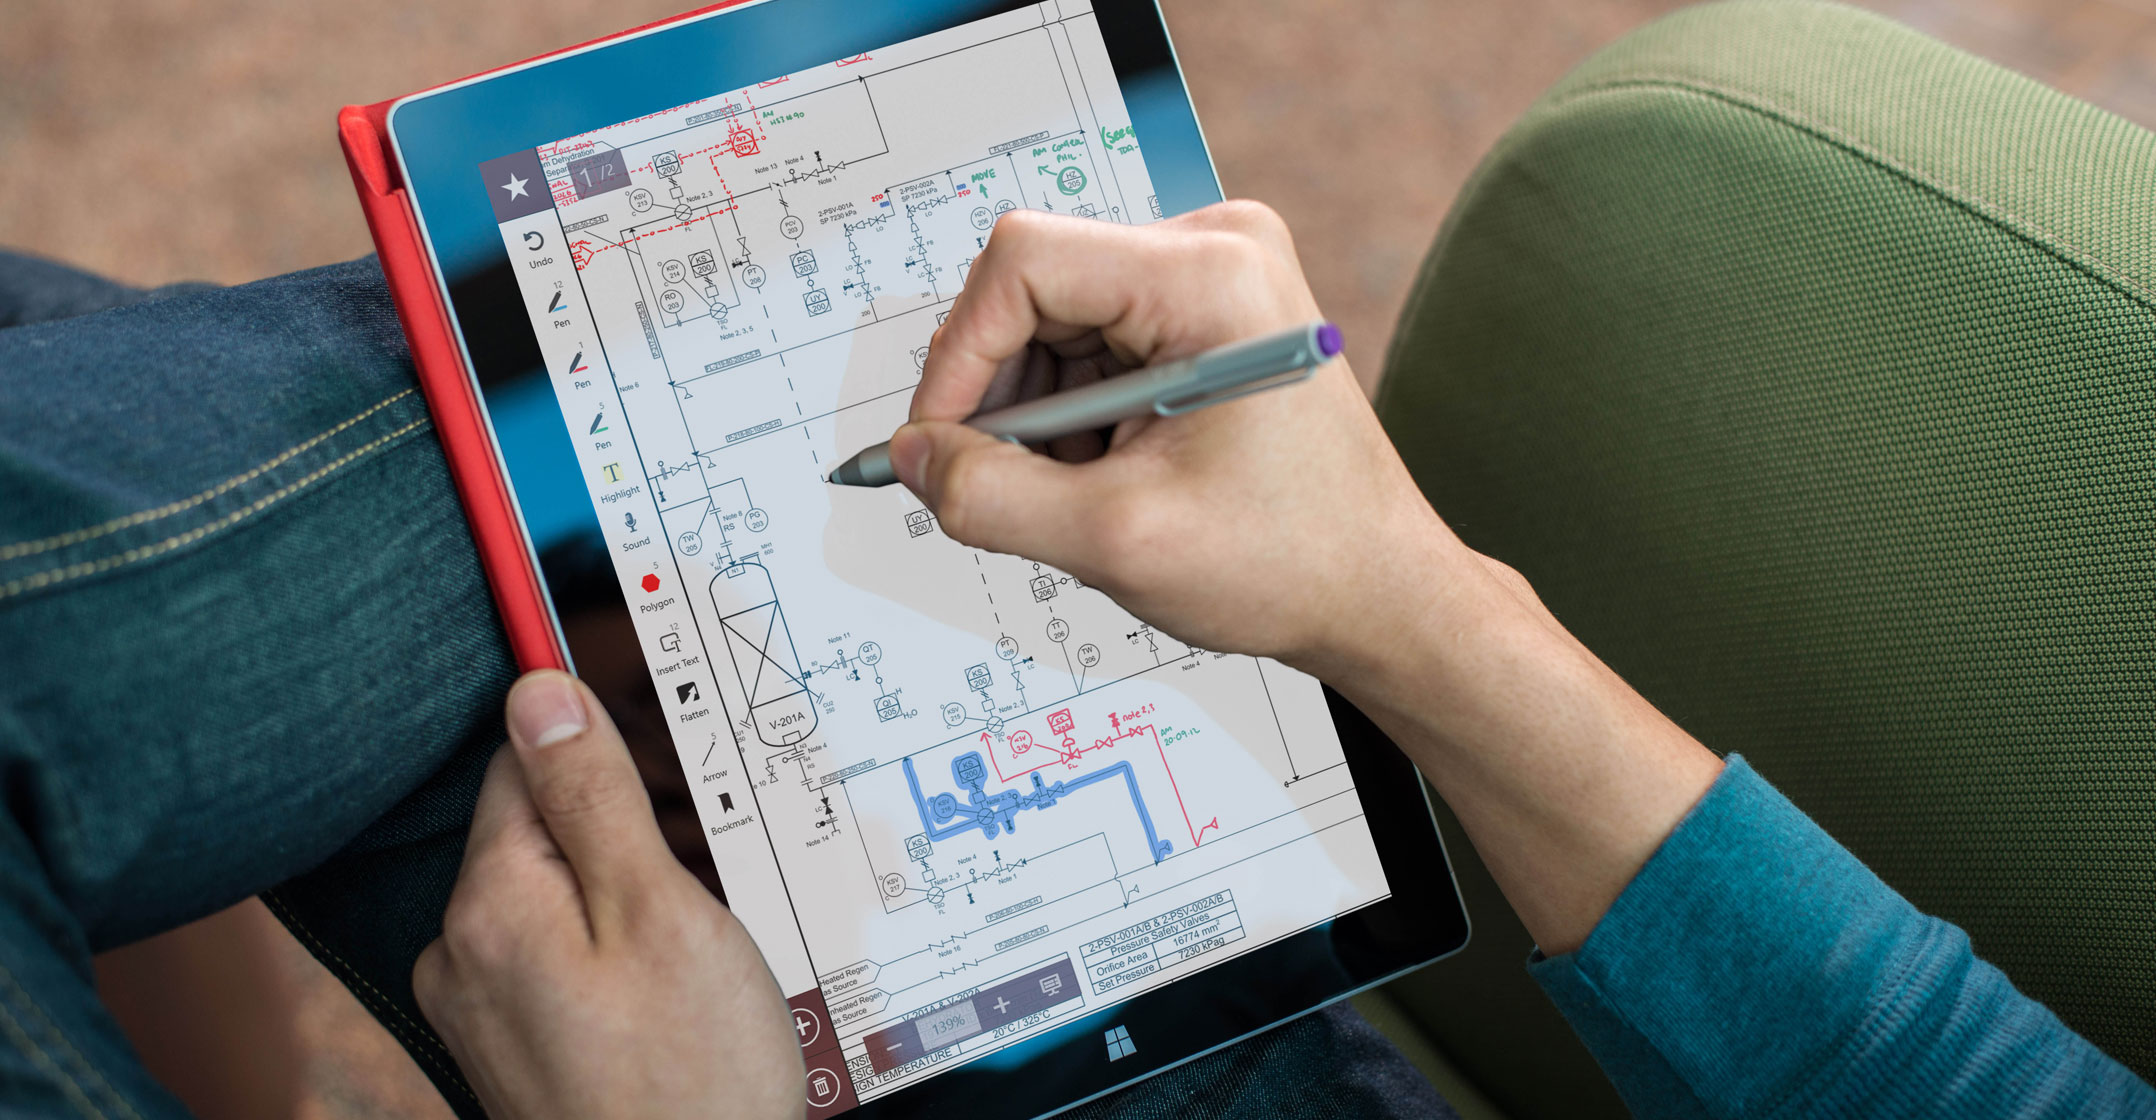 Low-Cost Surface Tablet Coming in 2018